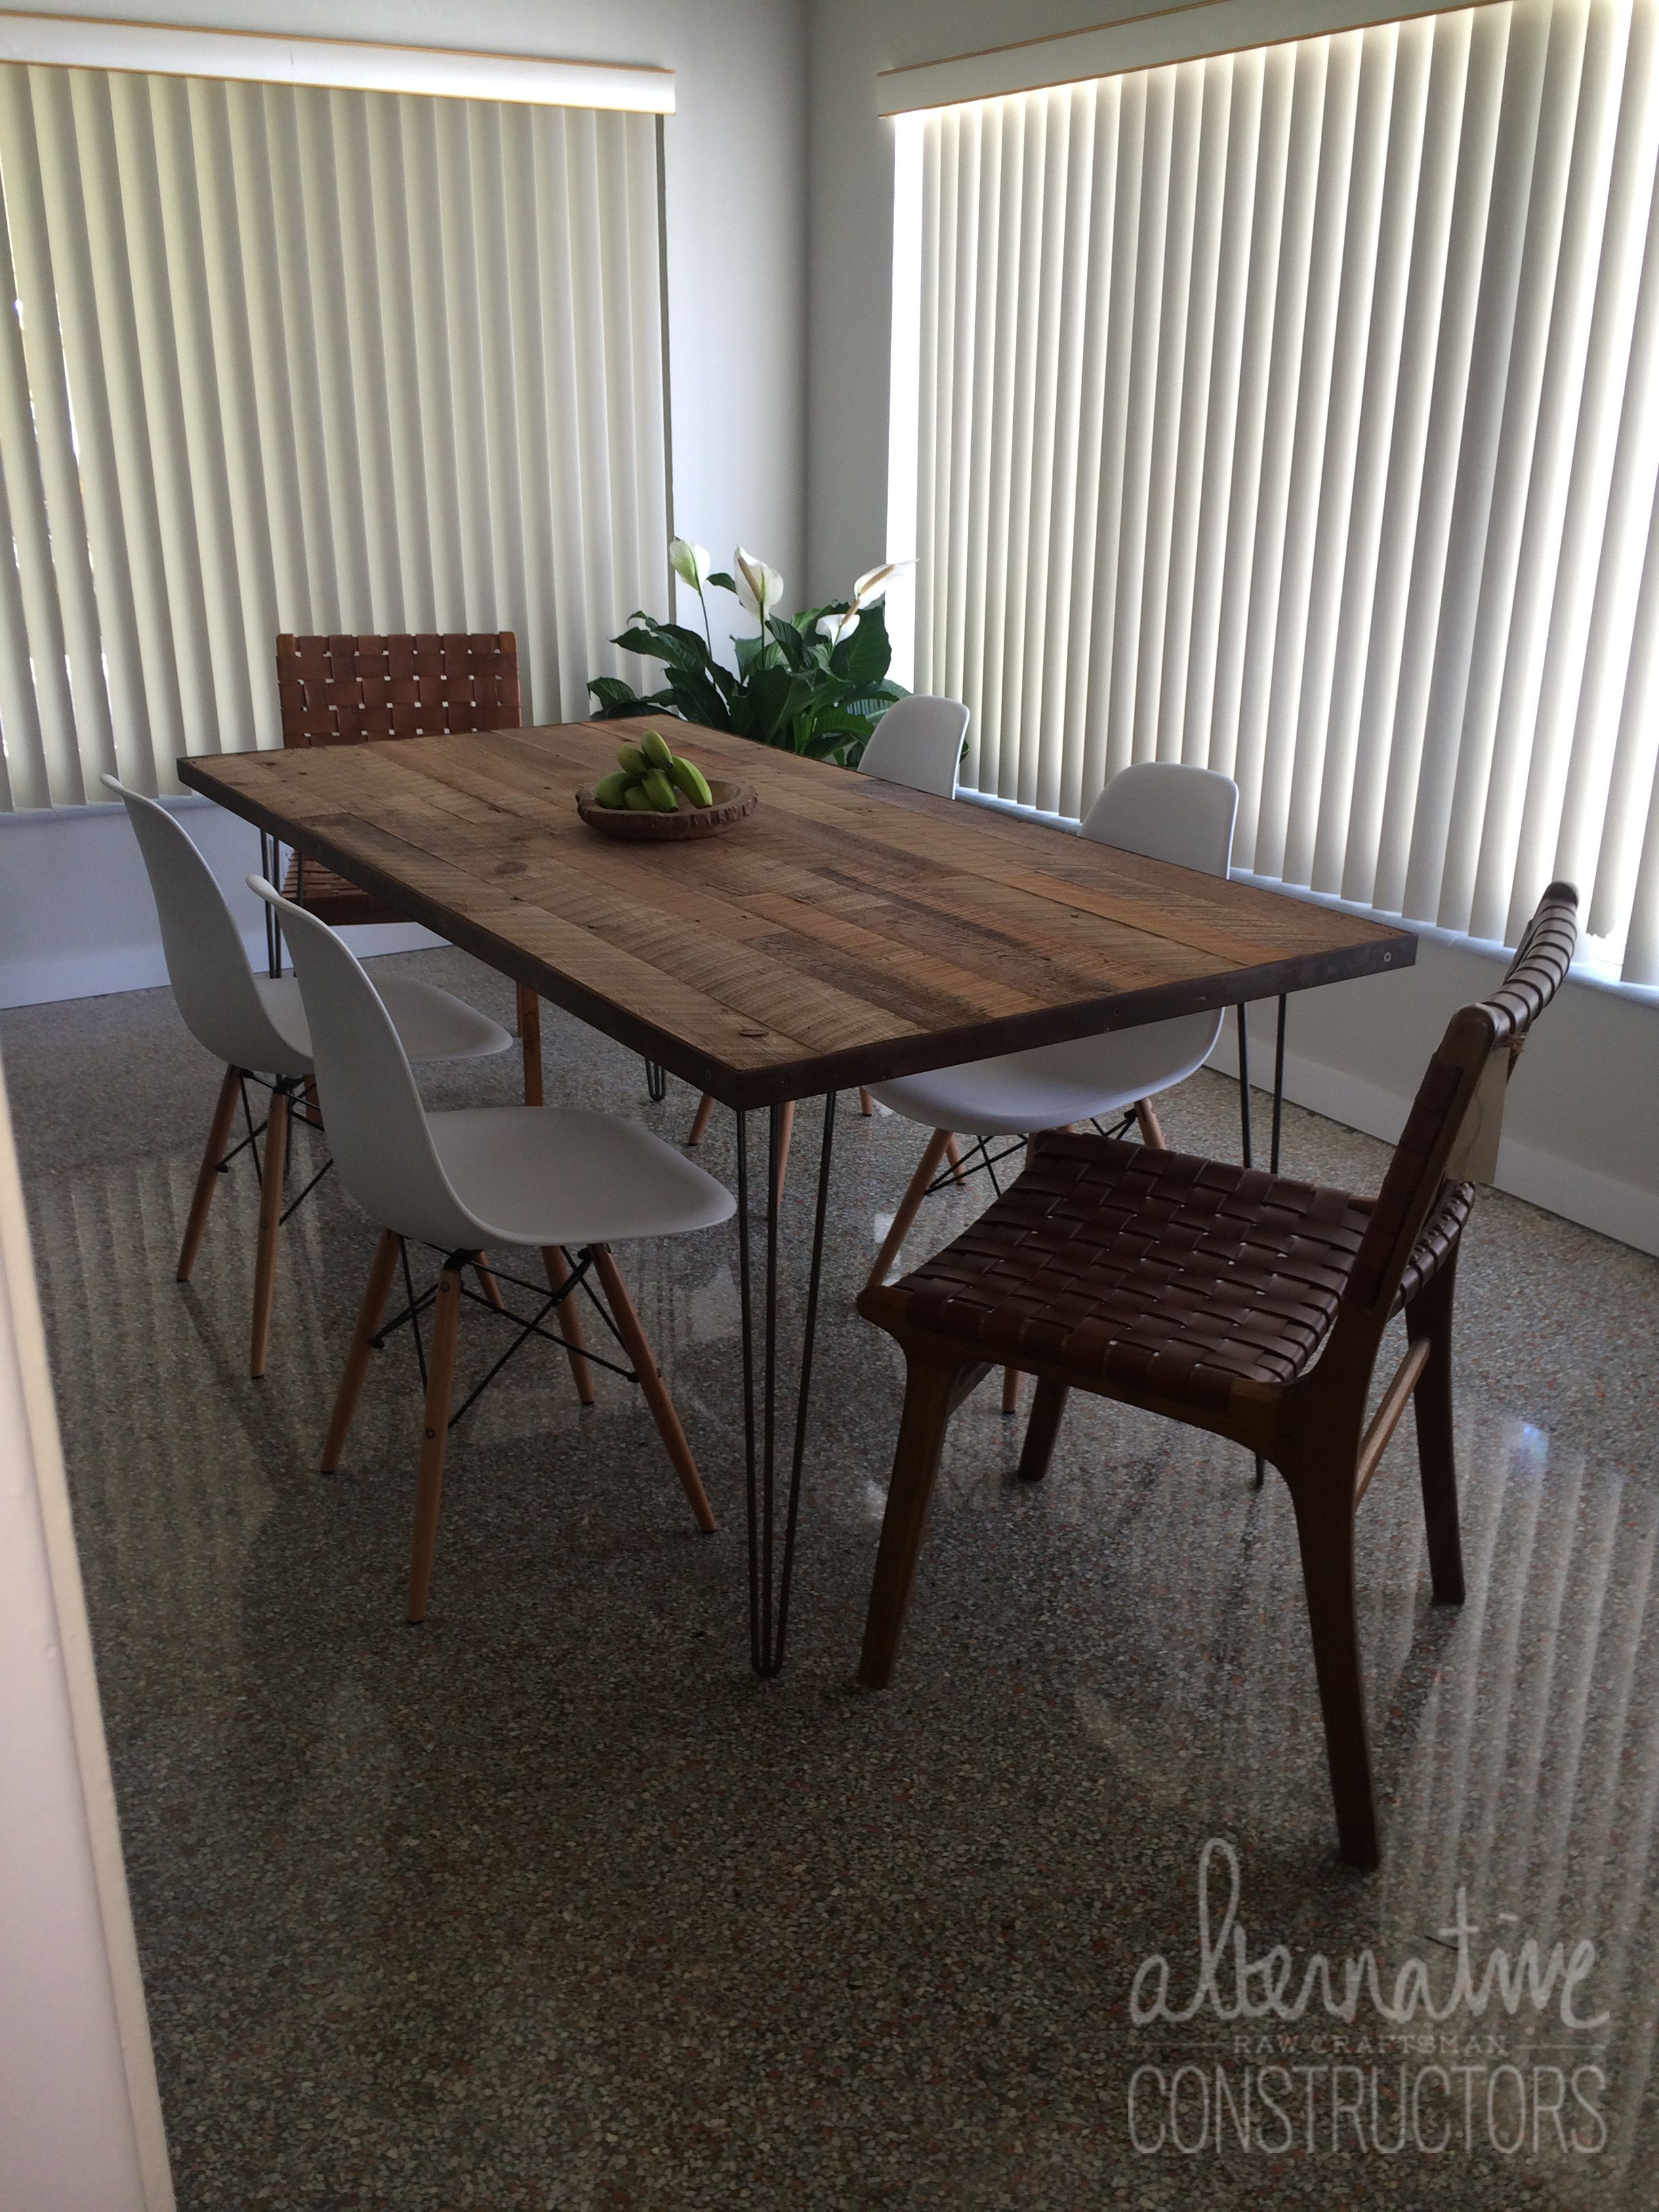 Exceptionnel Custom Reclaimed Wood Table With Steel Pin Base Fabricated For A Home In  Oakland Park, Florida By Alternative Constructors.